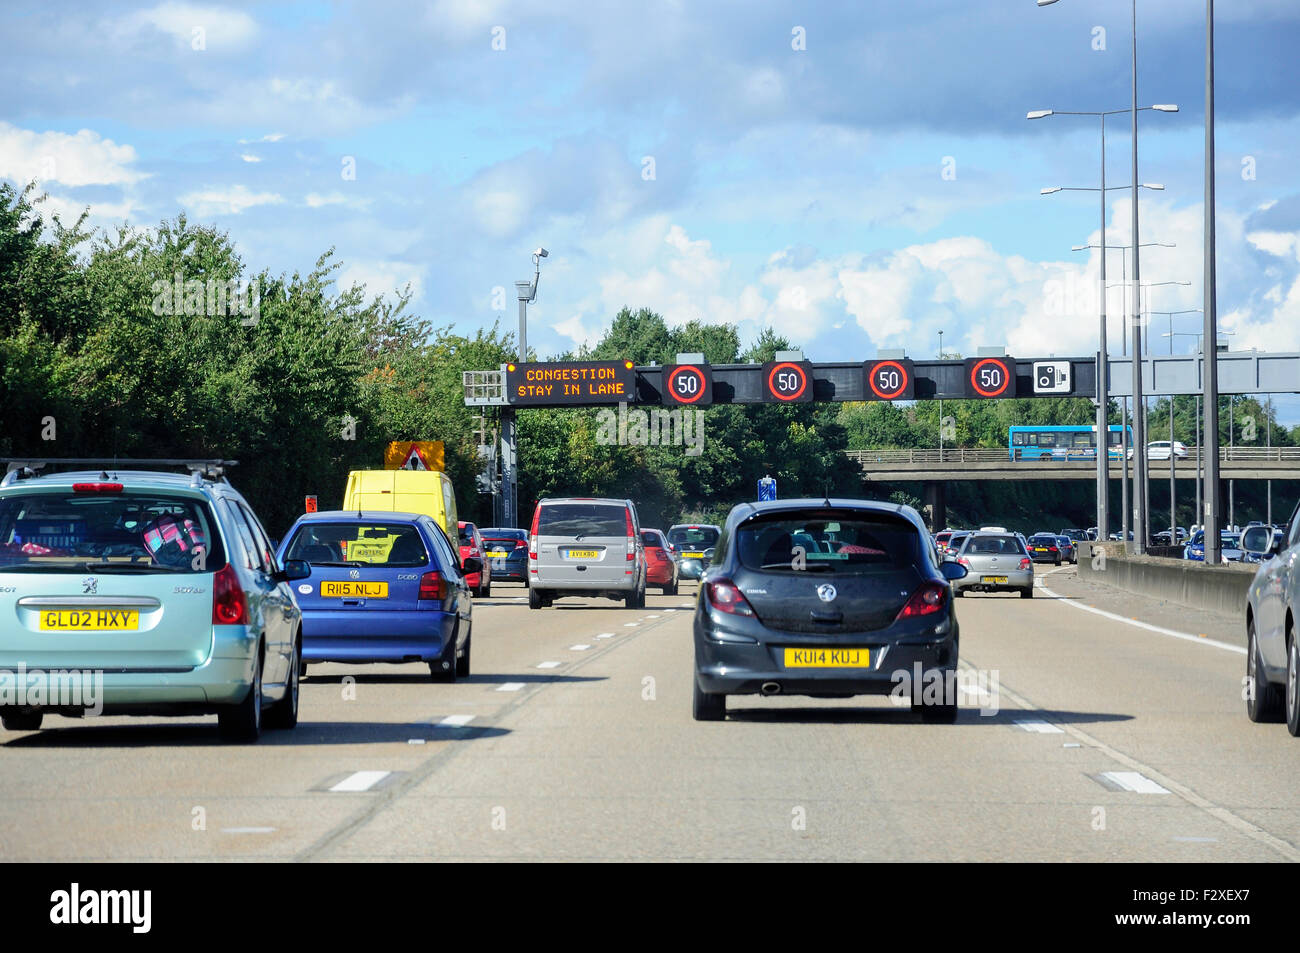 Congestion on M25 Motorway, Surrey, England, United Kingdom - Stock Image